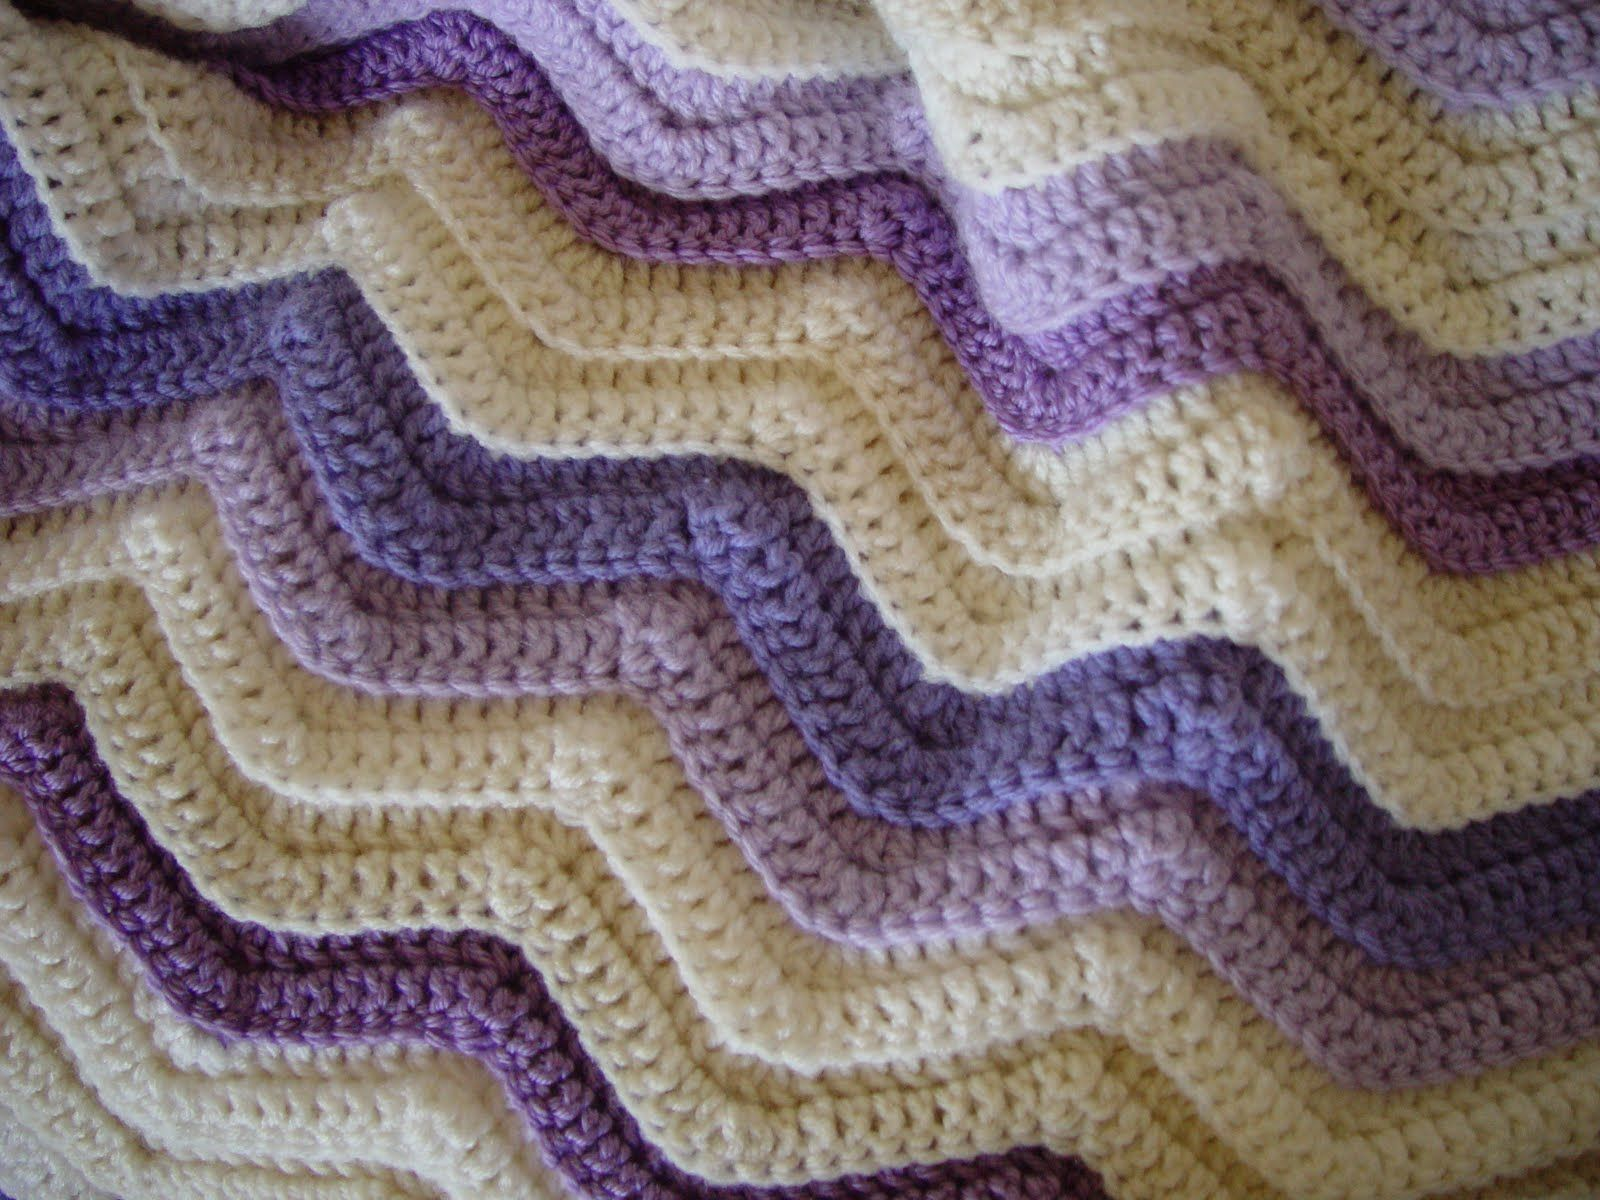 Hills and valleys baby afghan a new look for a new baby combine double crochet ripple patterns crochet and knitting patterns bankloansurffo Images